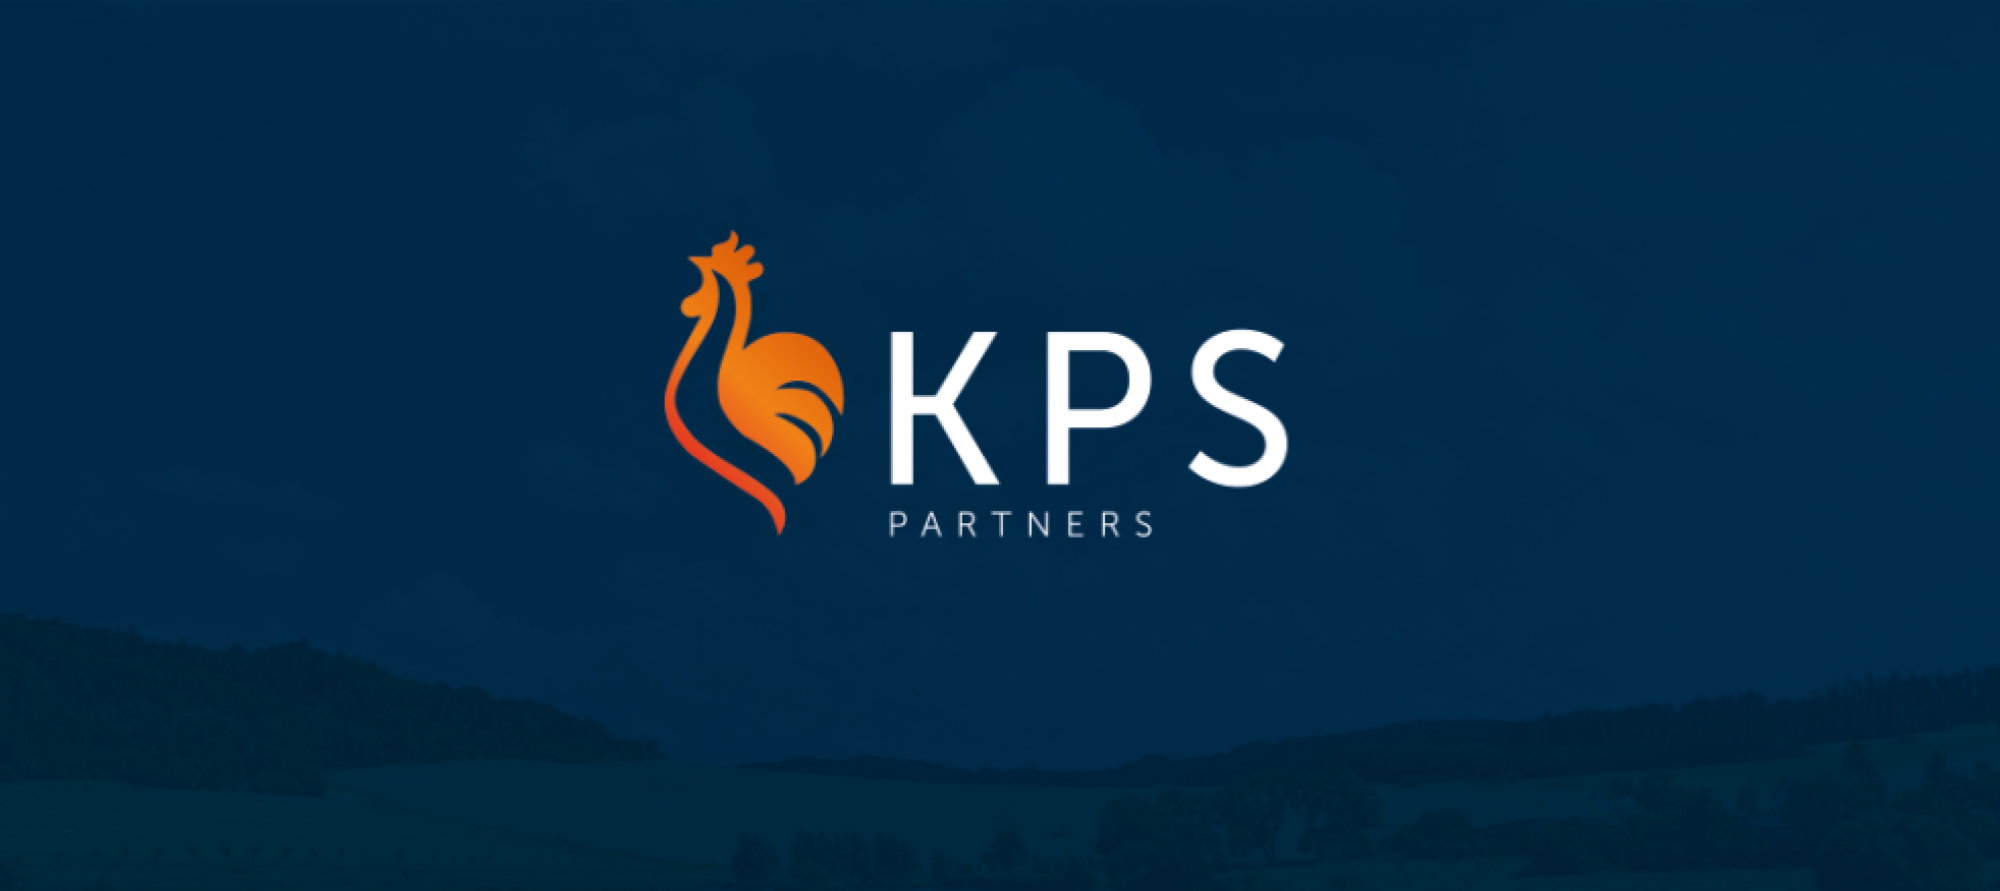 KPS Partners sp. z o.o.